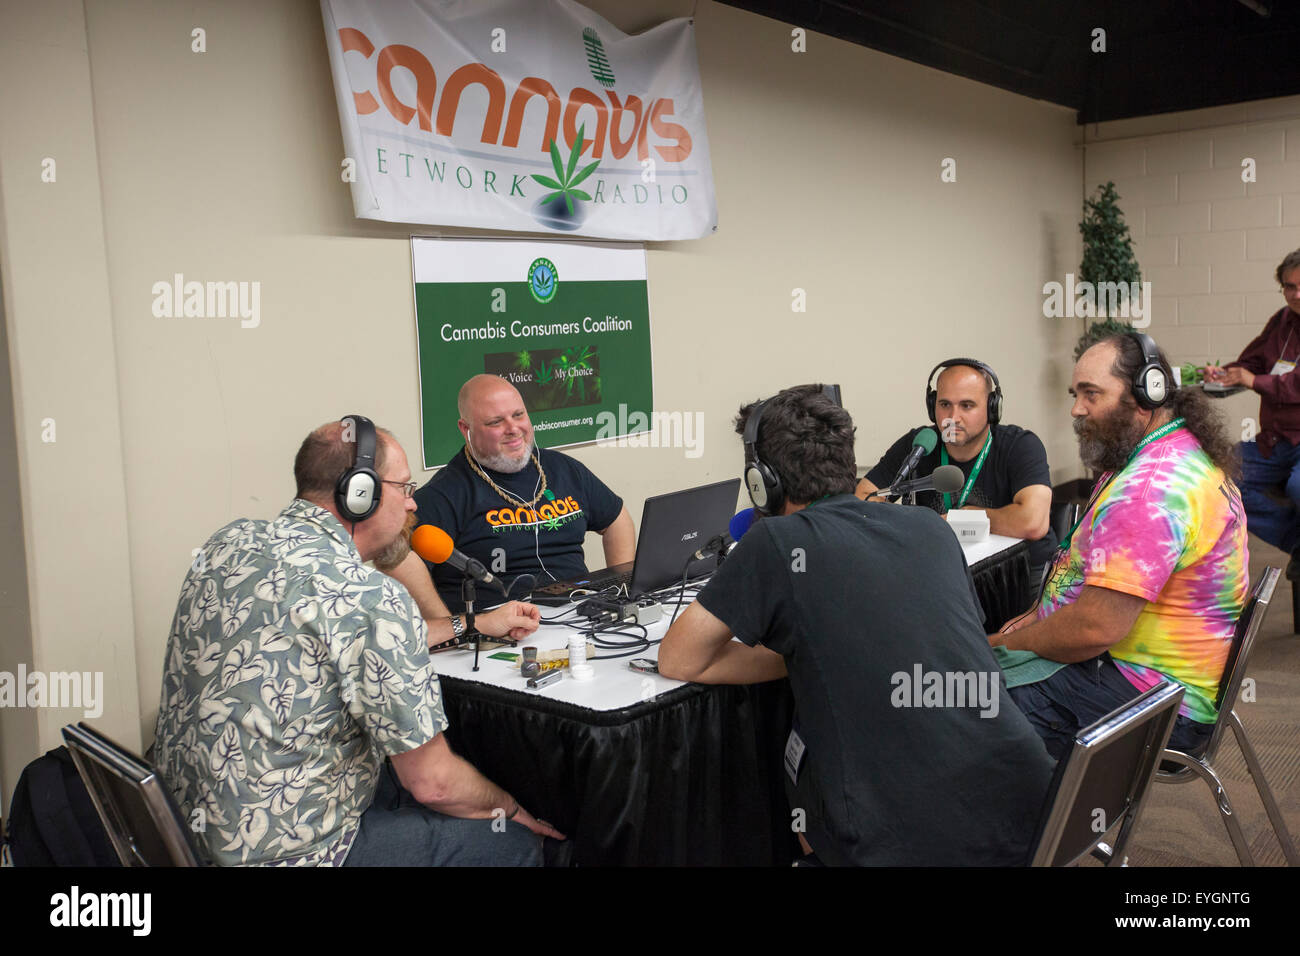 Denver, Colorado - The Cannabis Network Radio broadcasts from the INDO Expo, a marijuana trade show. - Stock Image